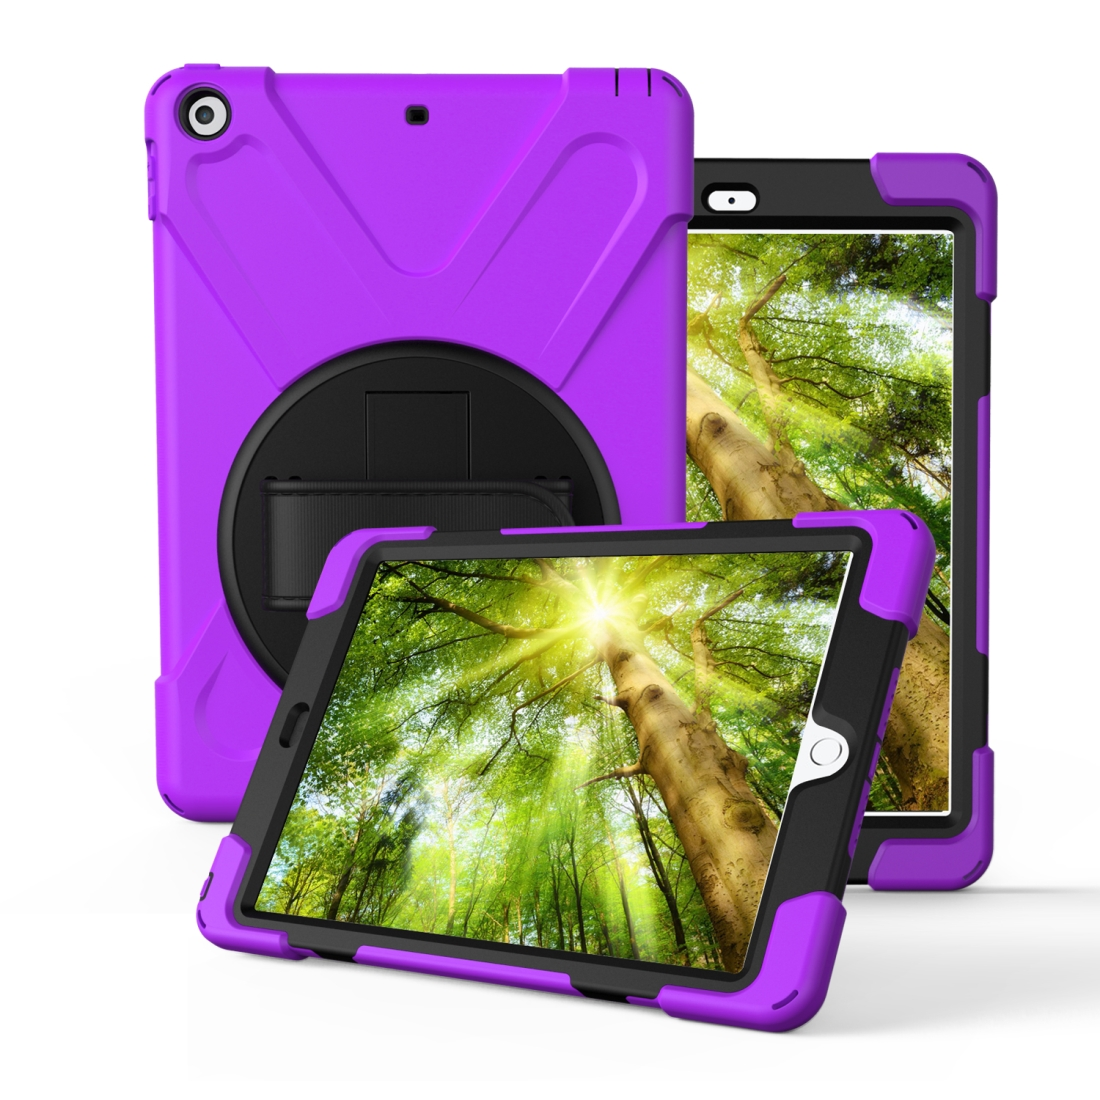 iPad 7th Generation Case (10.2 Inch) With A Protective Rotatable Design And Hand Strap (Purple)